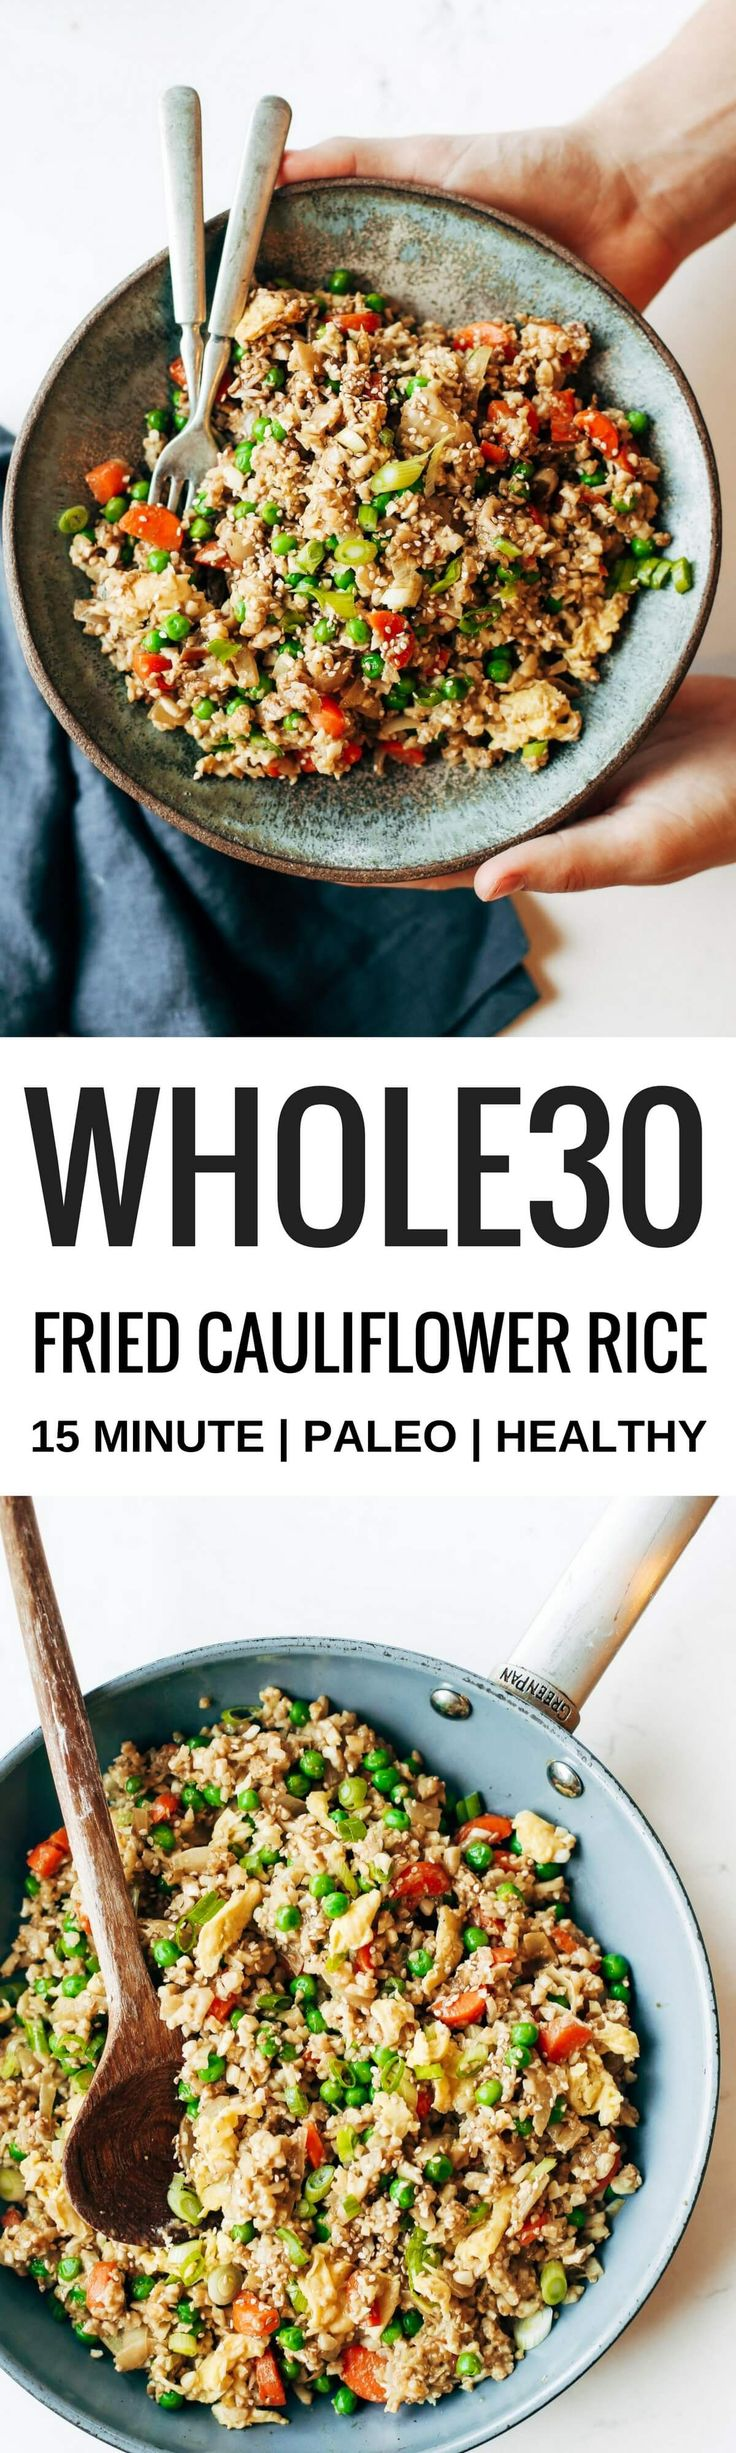 Easy 10 minute fried cauliflower rice- whole30 and paleo! | Posted By: DebbieNet.com